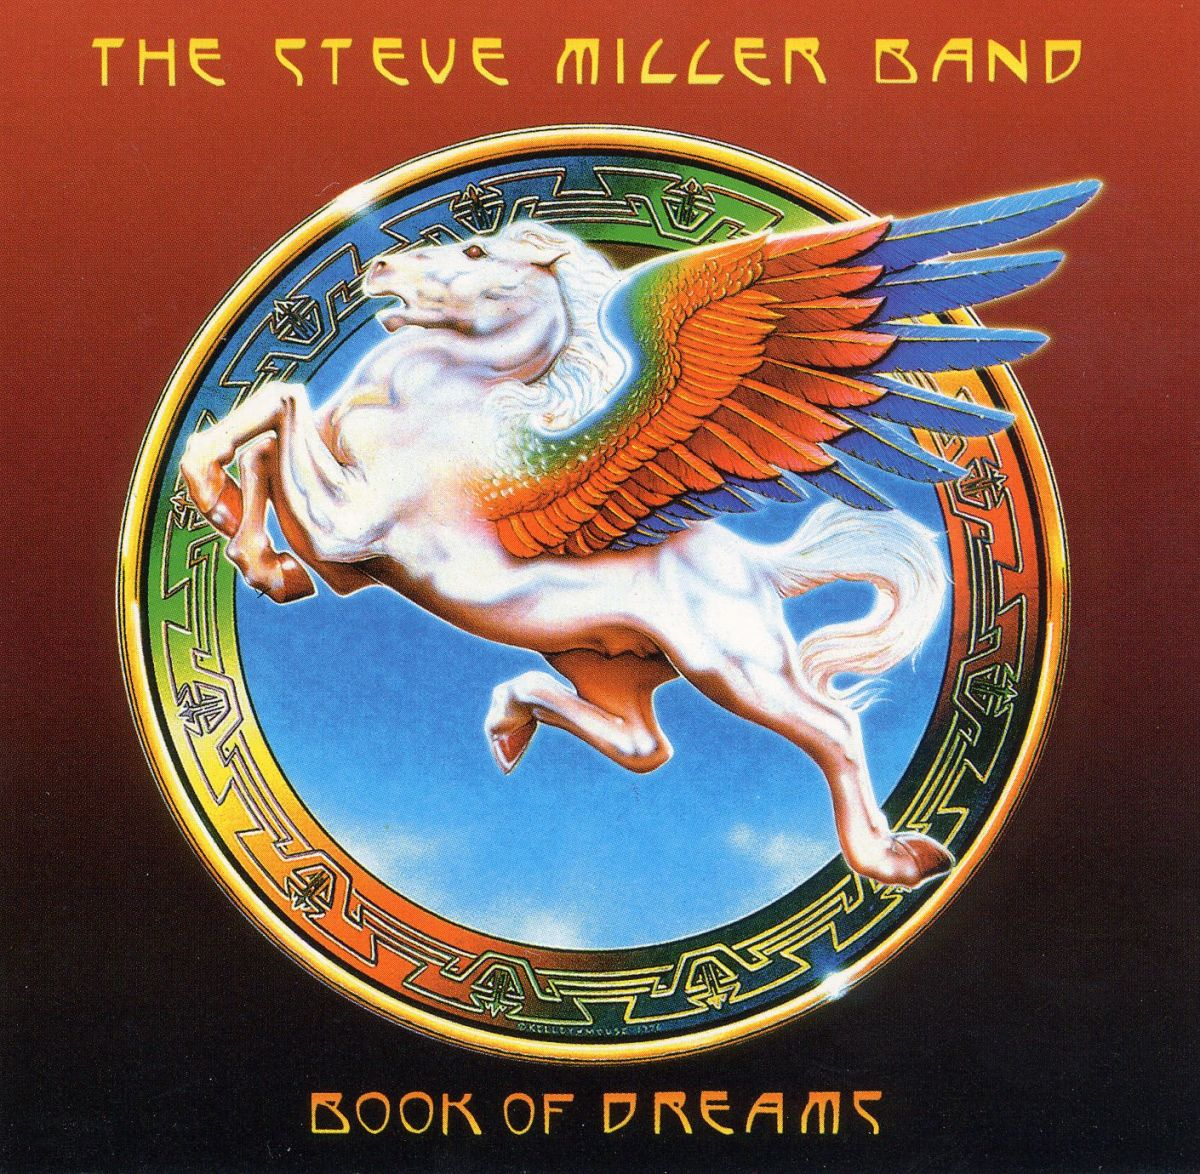 "Steve Miller Band ""Book Of Dreams"" Capitol Records SO-11630 12"" LP Vinyl Record US Pressing (1977) Album Cover Art by Alton Kelley & Stanley Mouse"